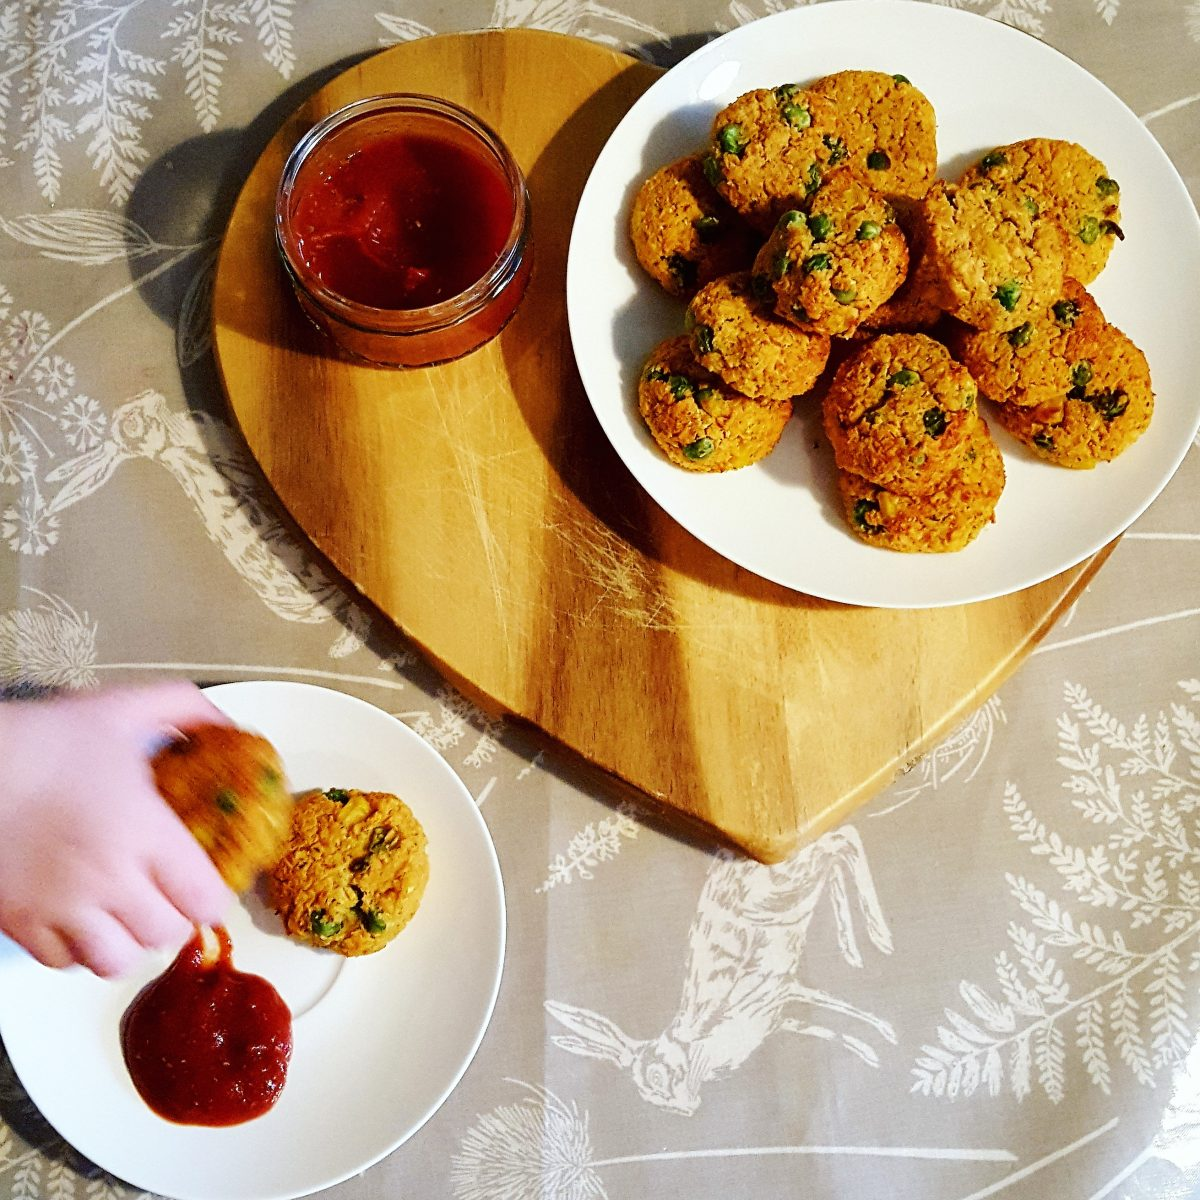 Veggie Lentil Nuggets and Homemade Tomato Sauce